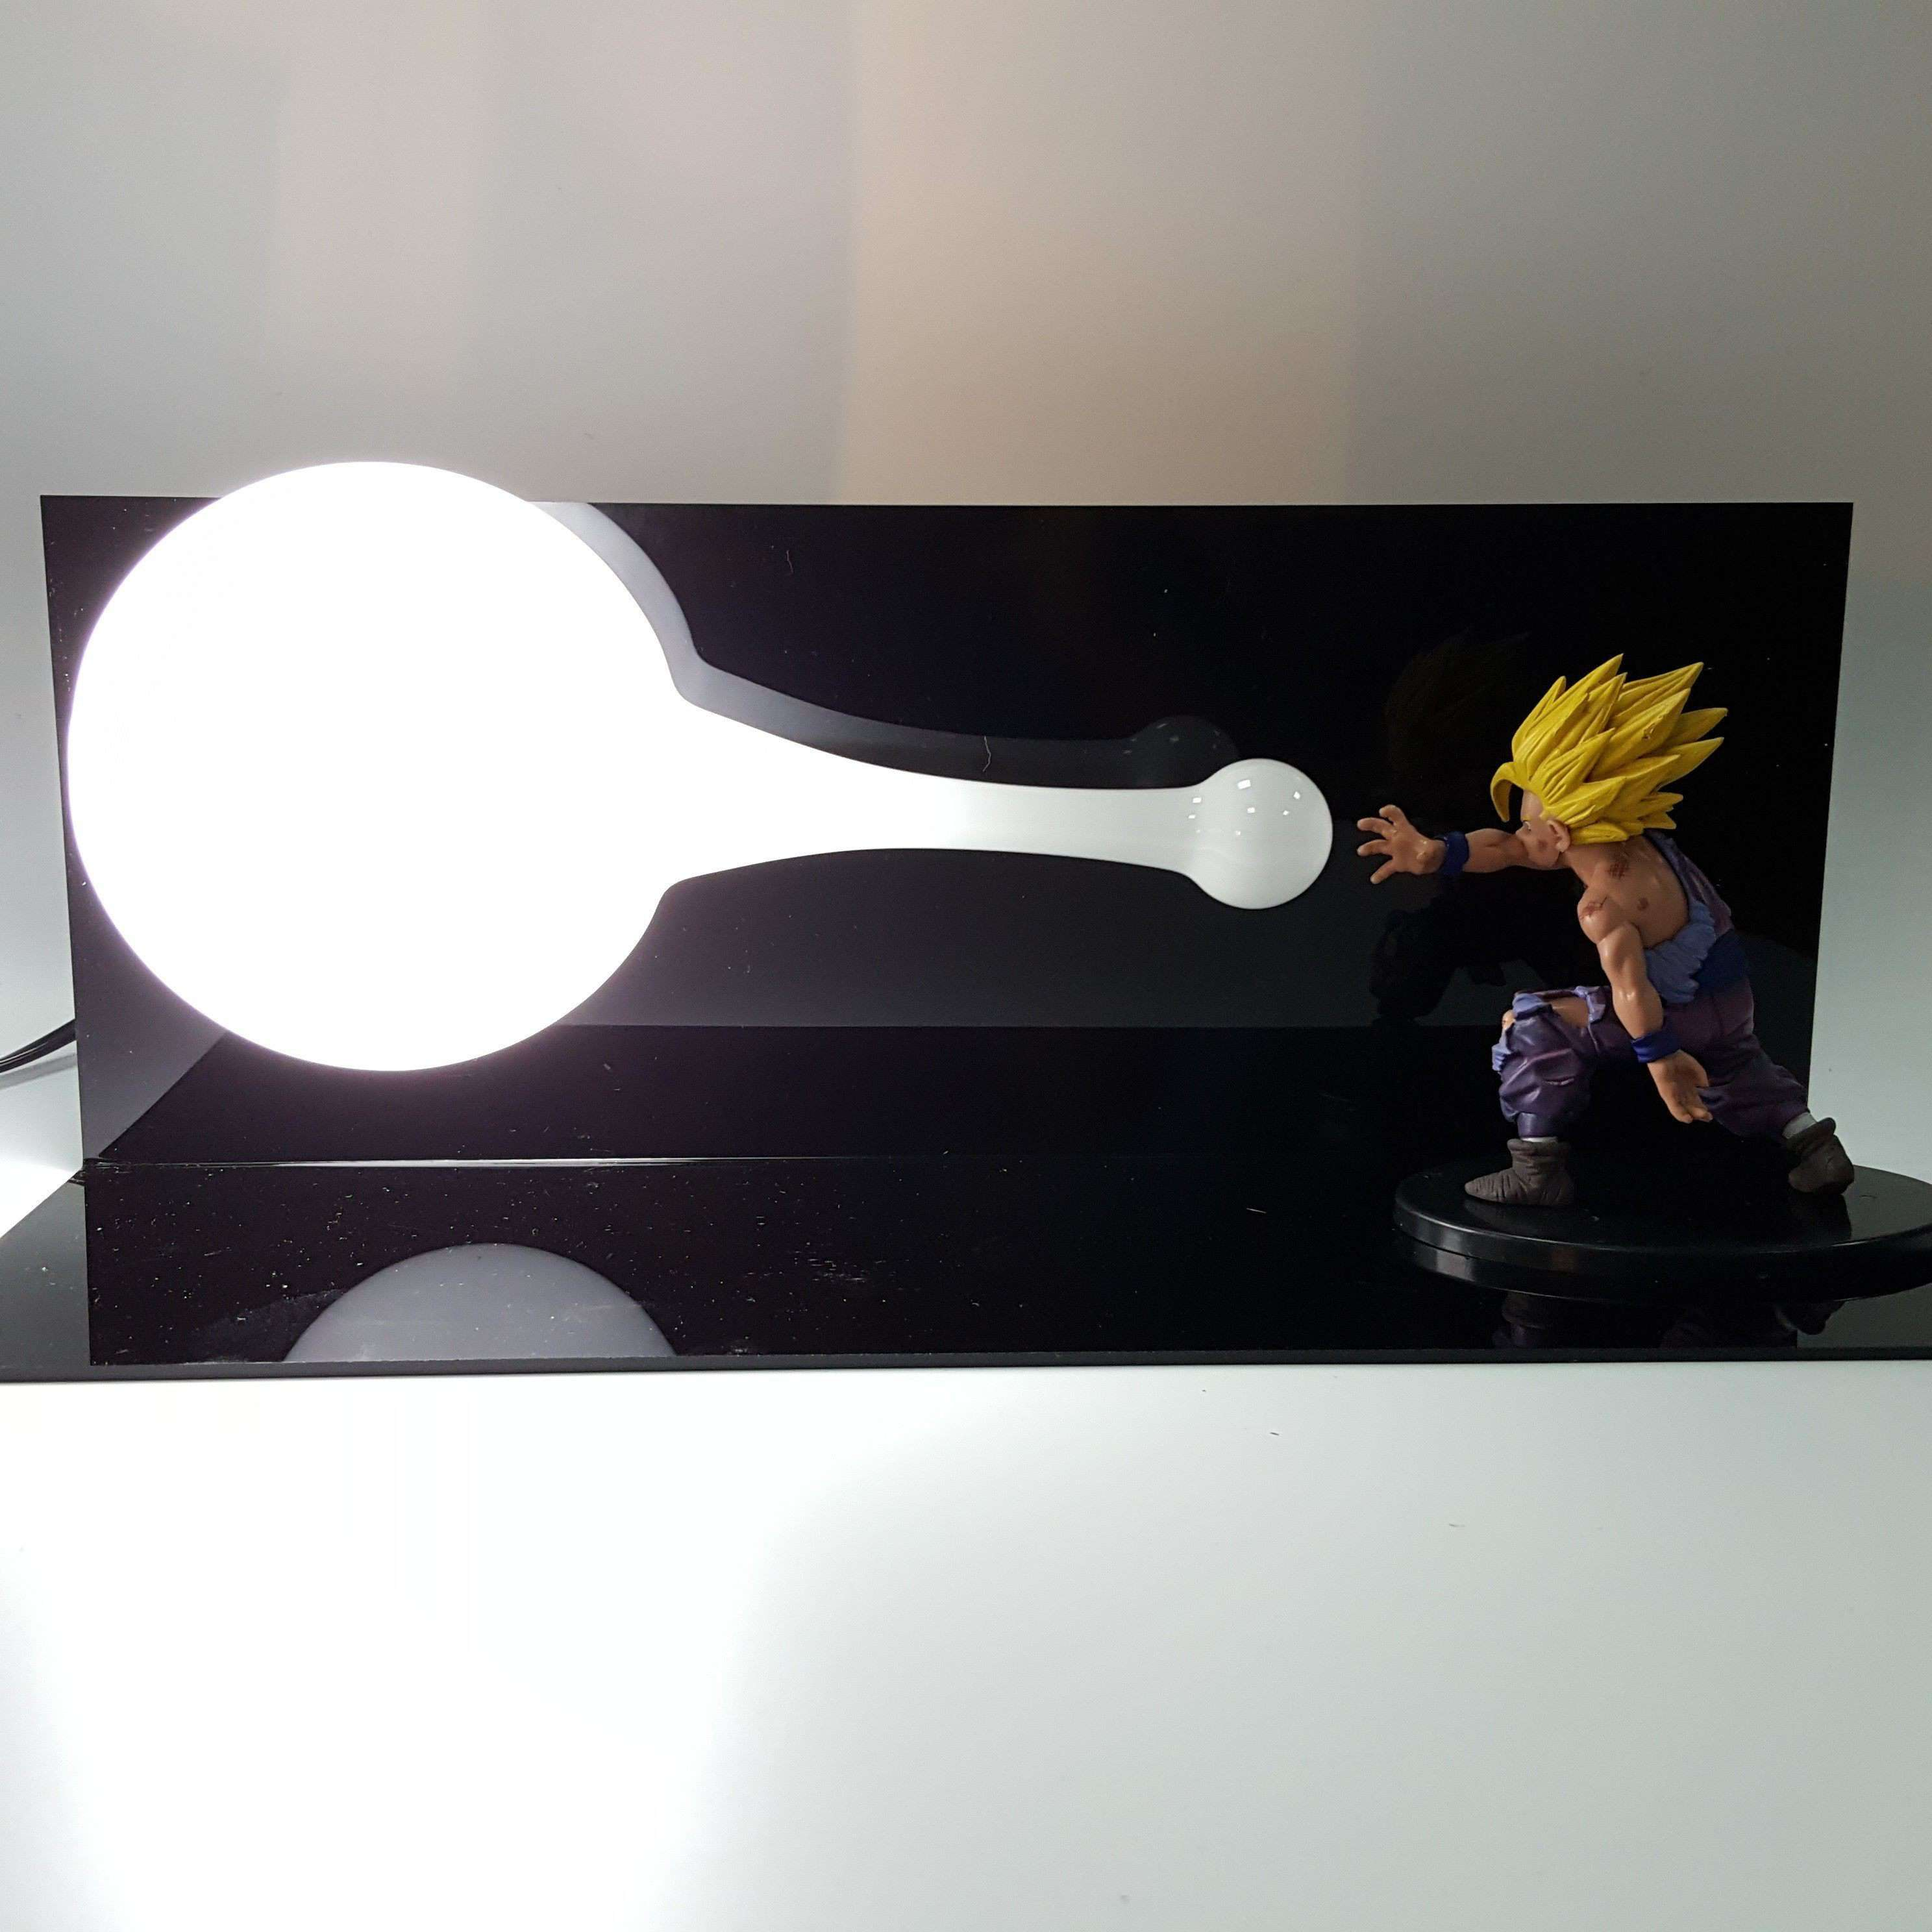 Lampes - Lampe Dragon Ball Z Gohan SSJ2 Final Kamehameha